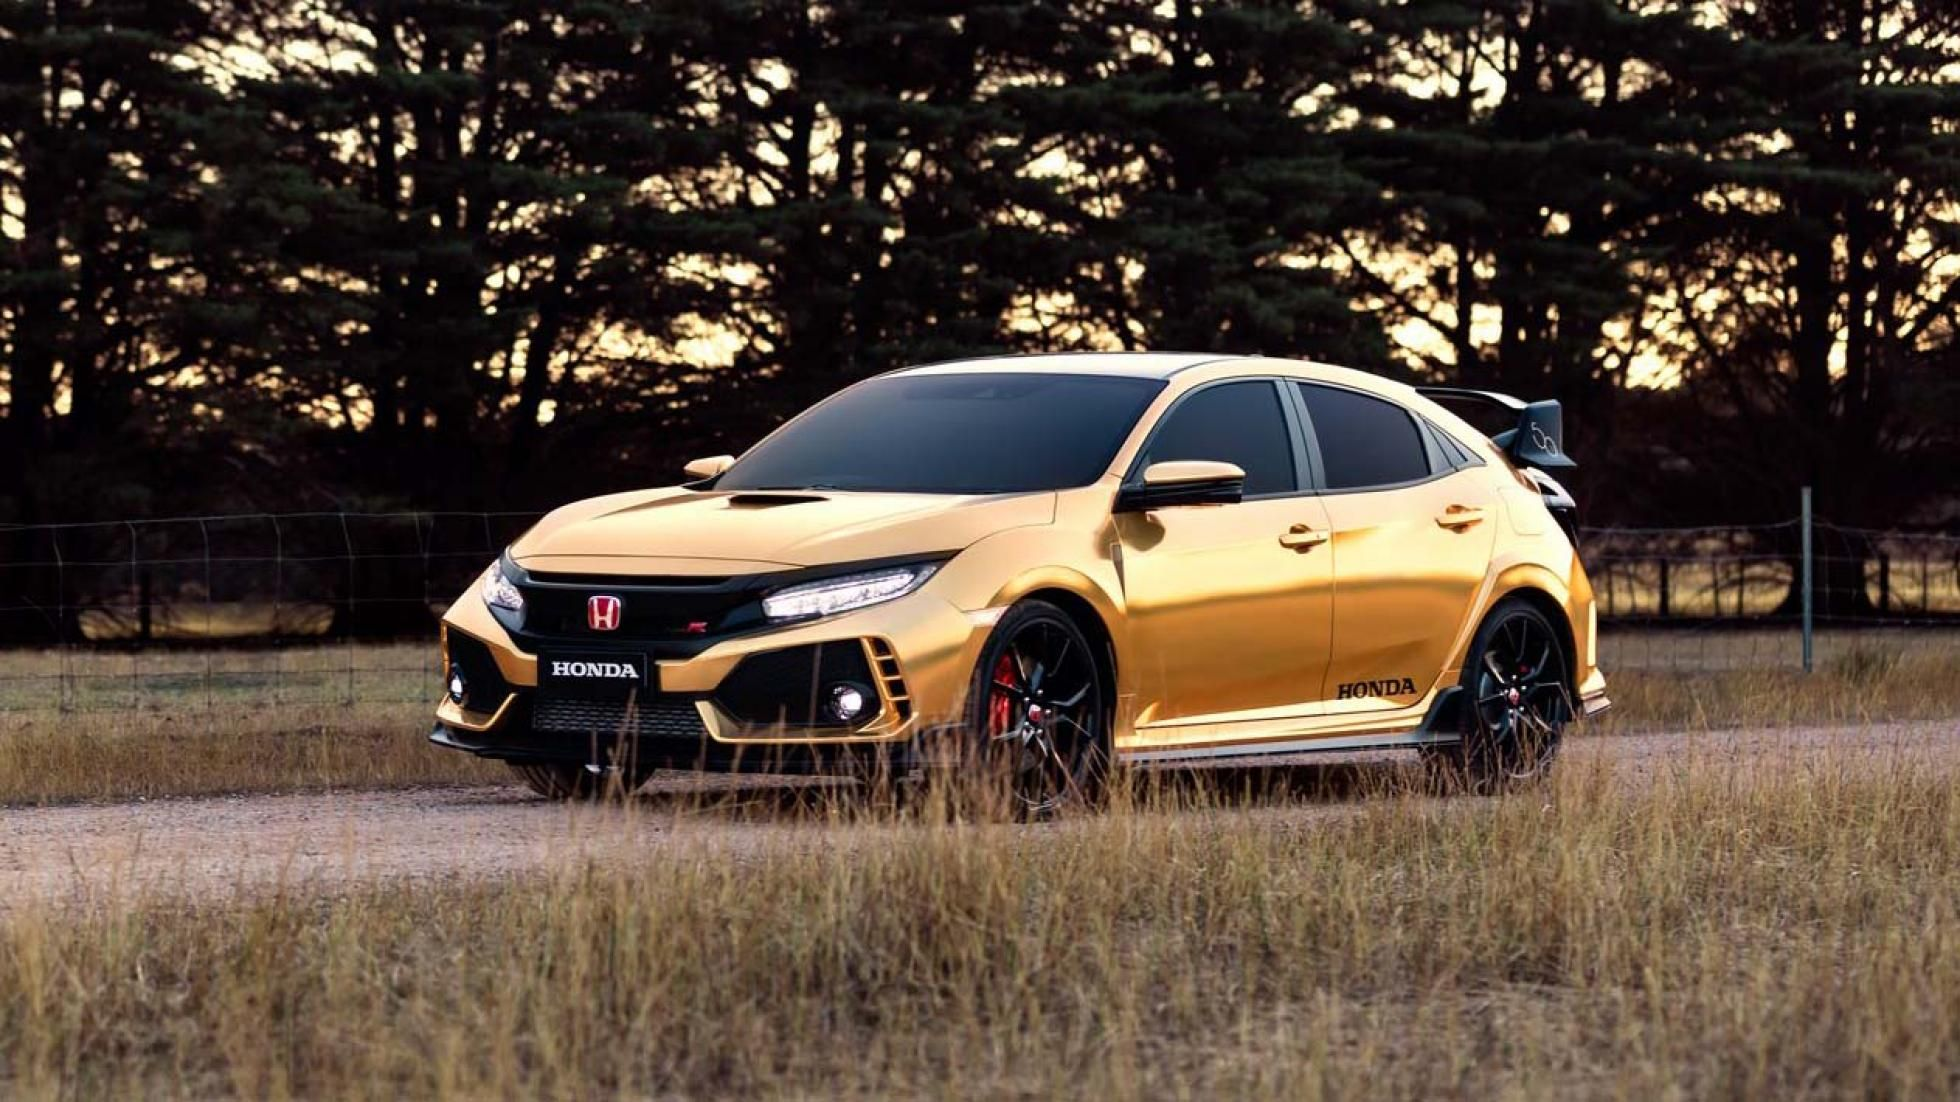 Honda Has Painted A Civic Type R And Nsx Gold Eek Honda Civic Type R Honda Civic Civic